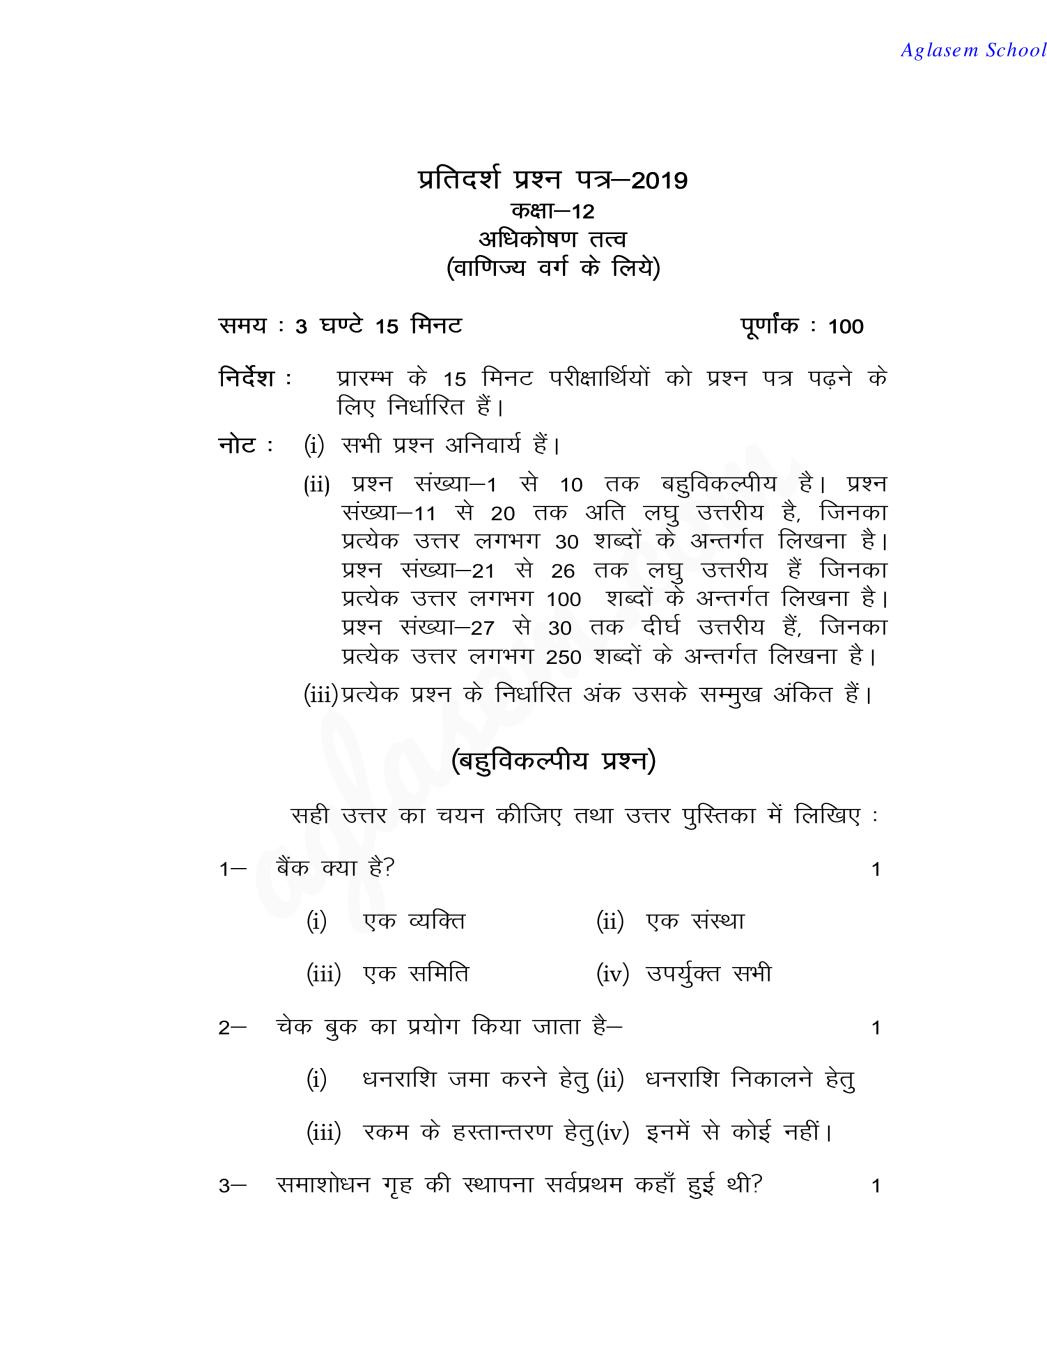 UP Board Model Paper 2020 Class 12th – Banking